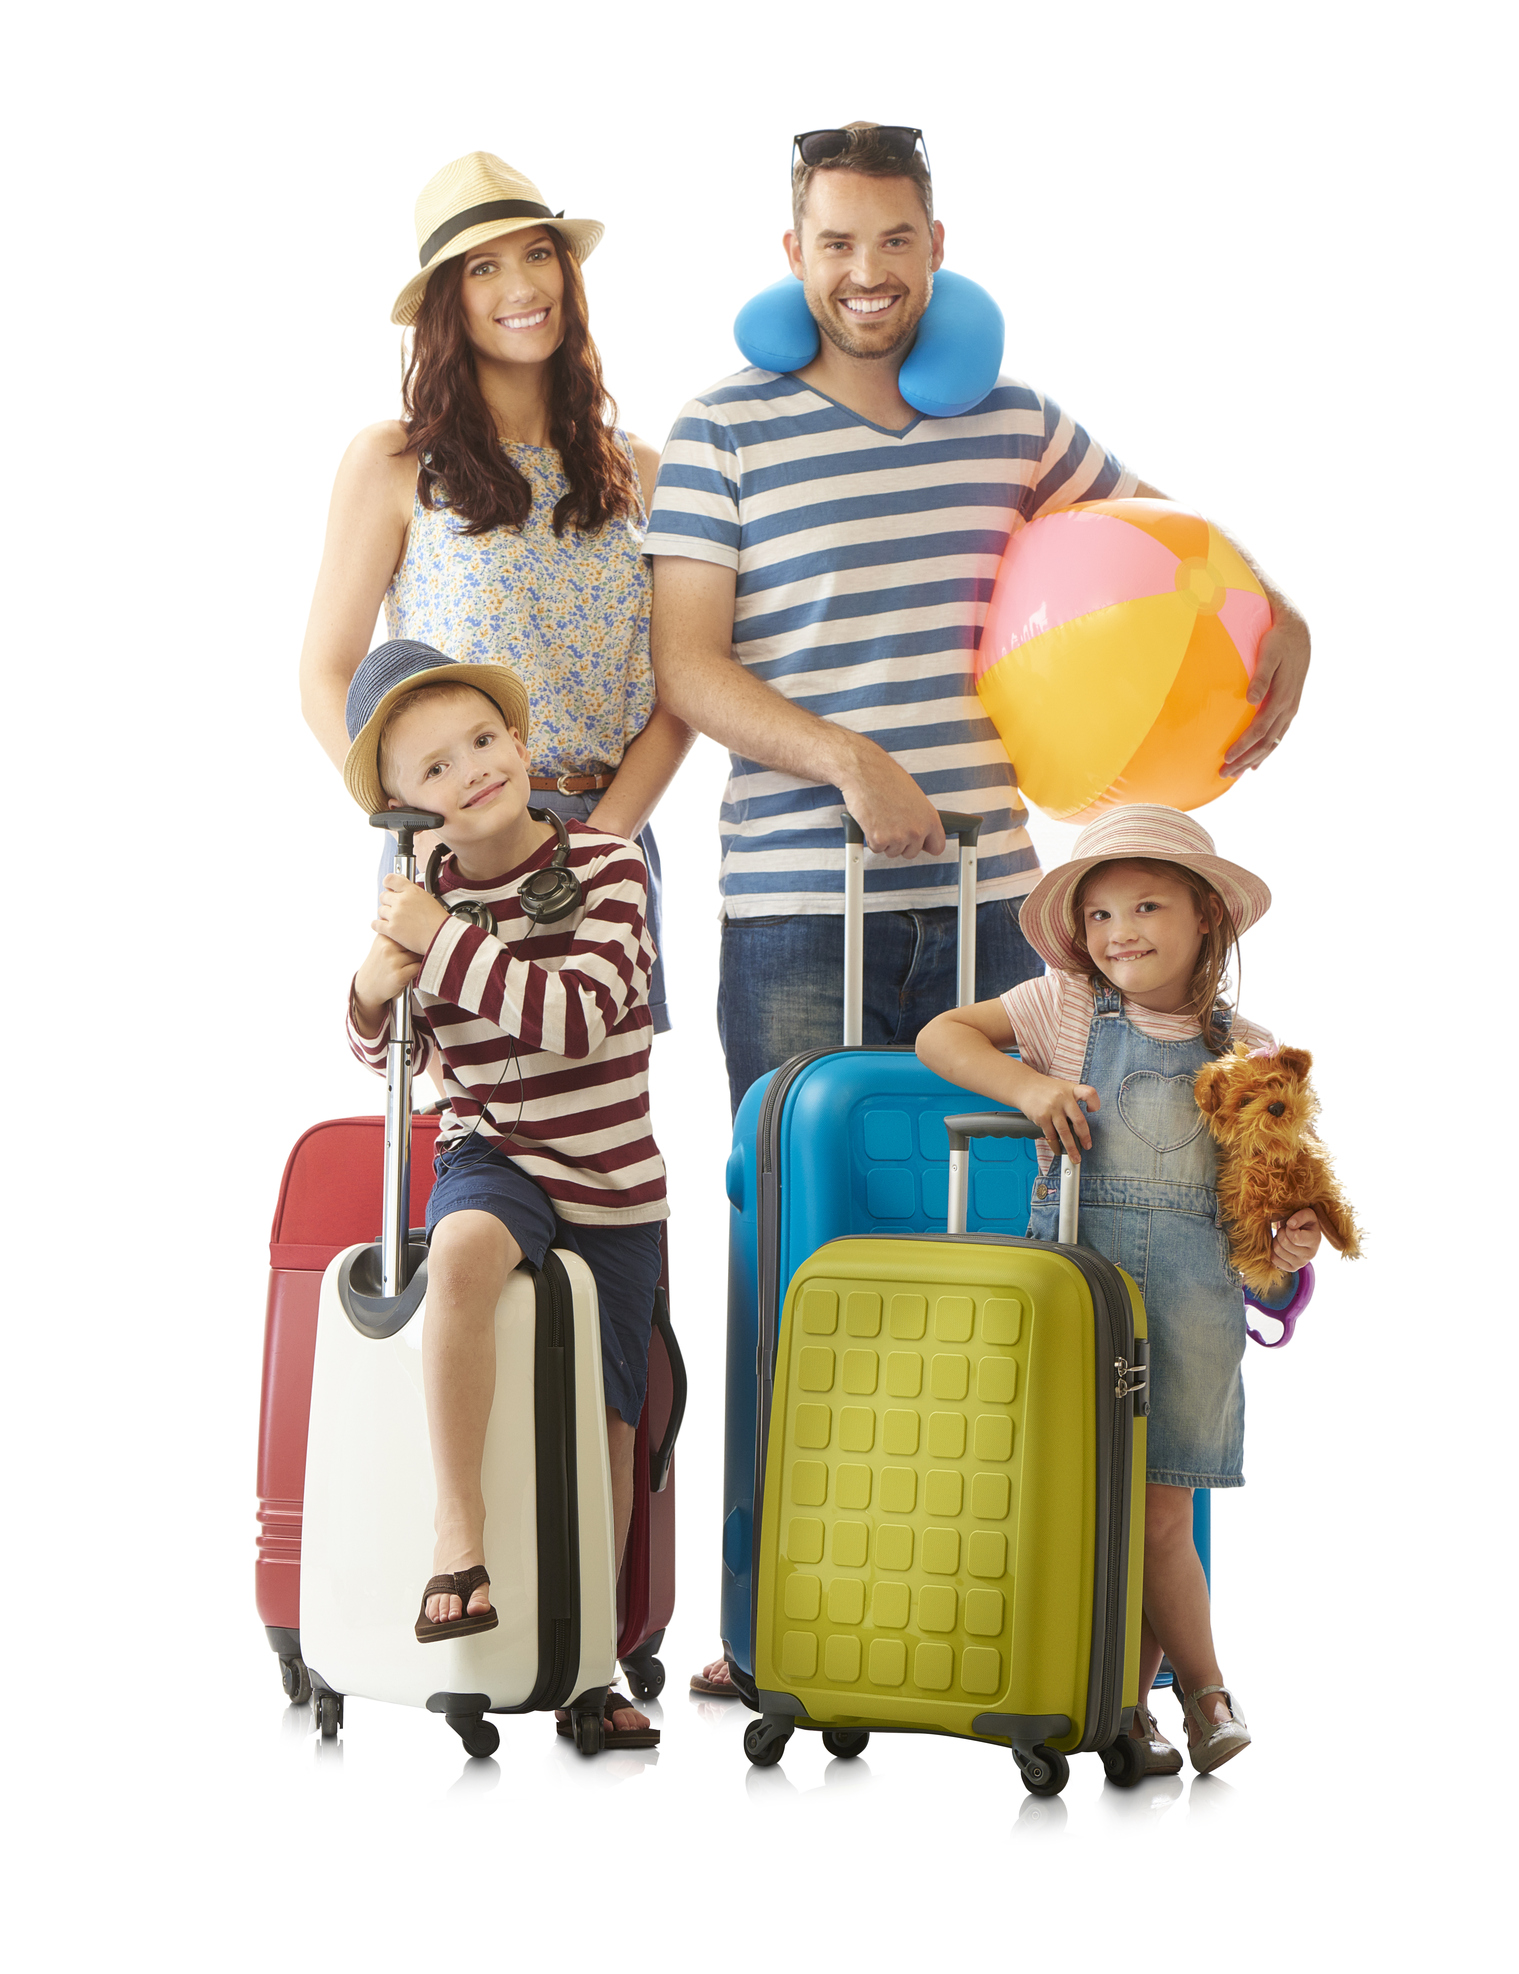 Liability Insurance for Summer Activities